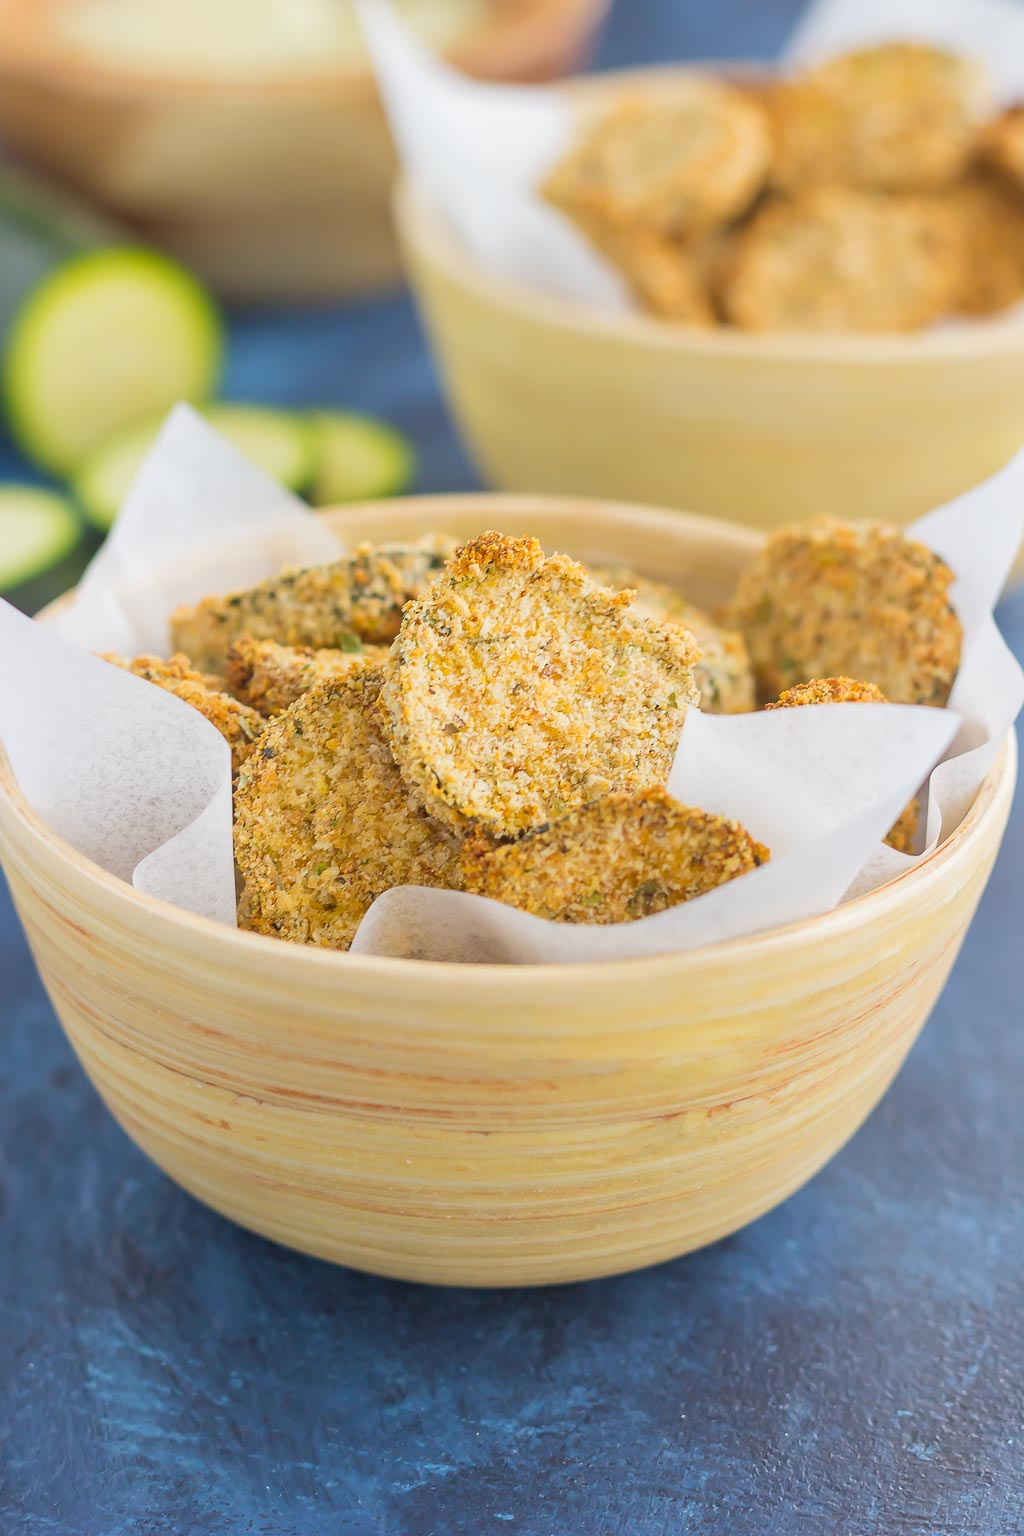 two bowls of baked zucchini chips